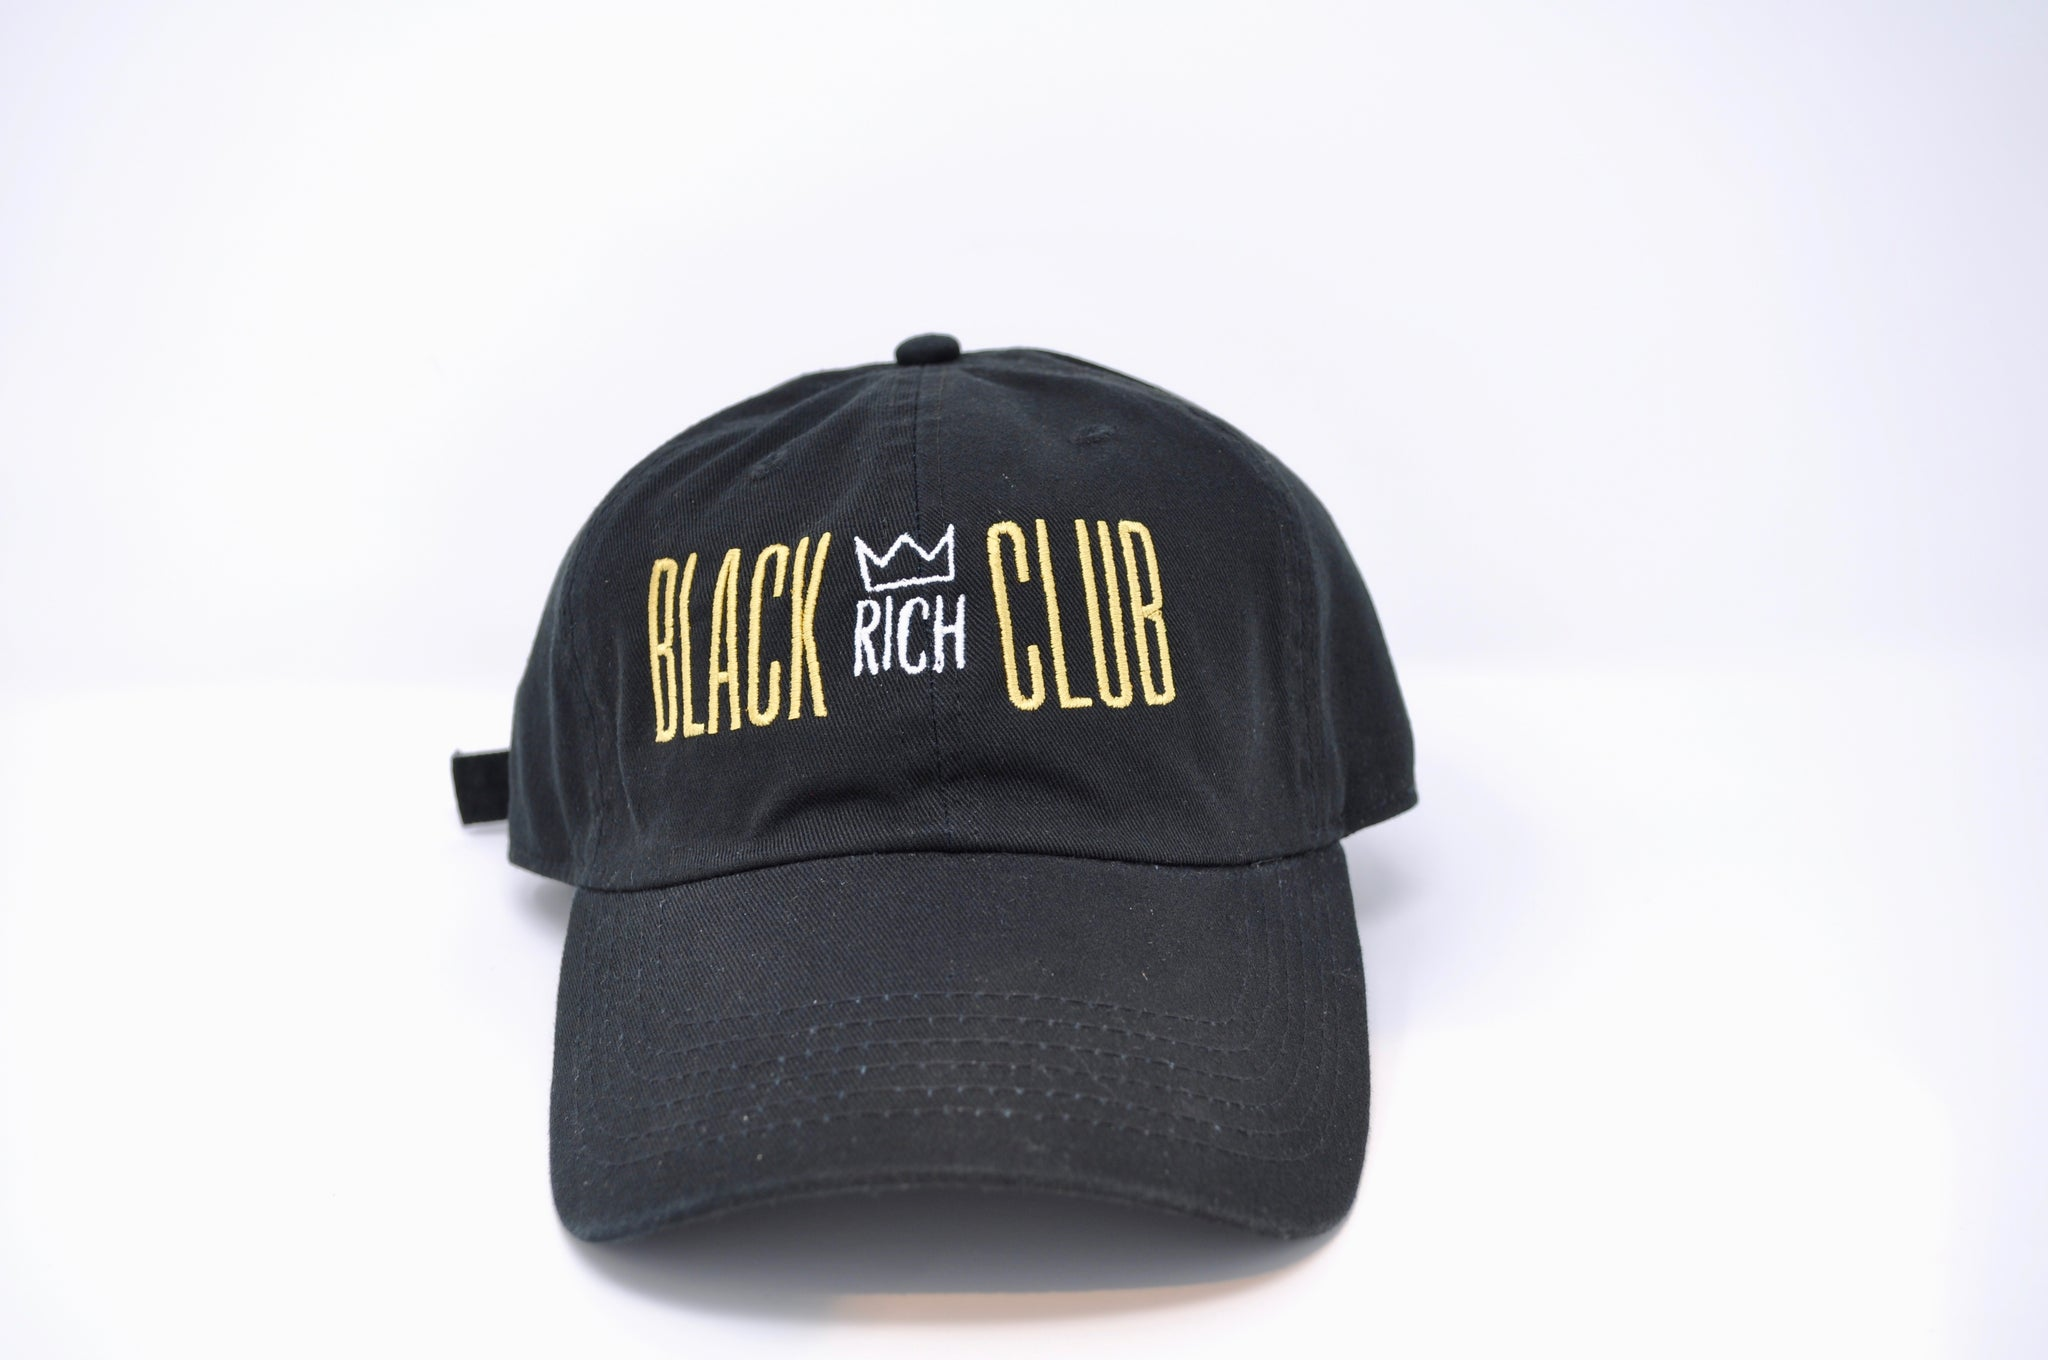 Black Rich Club